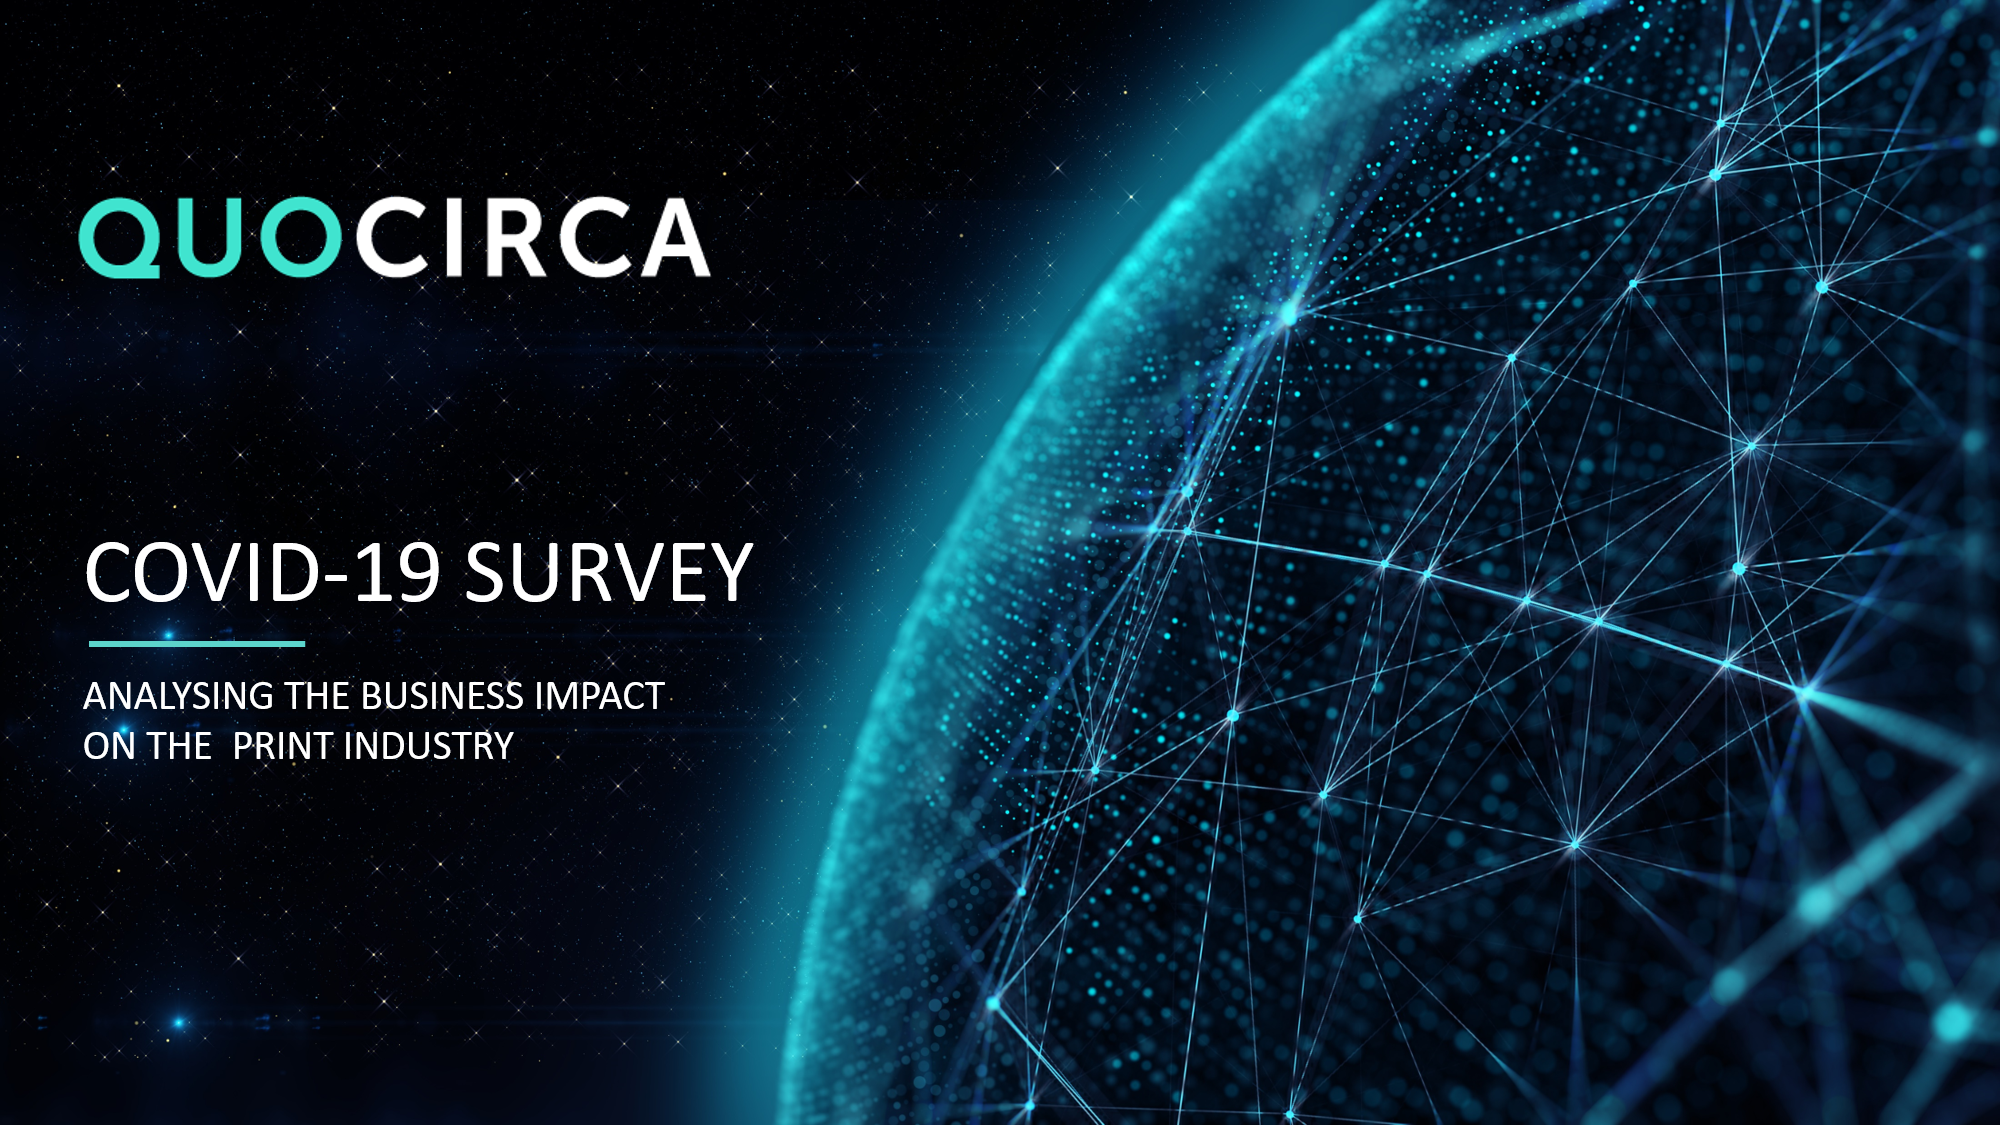 Quocirca COVID-19 Survey Findings